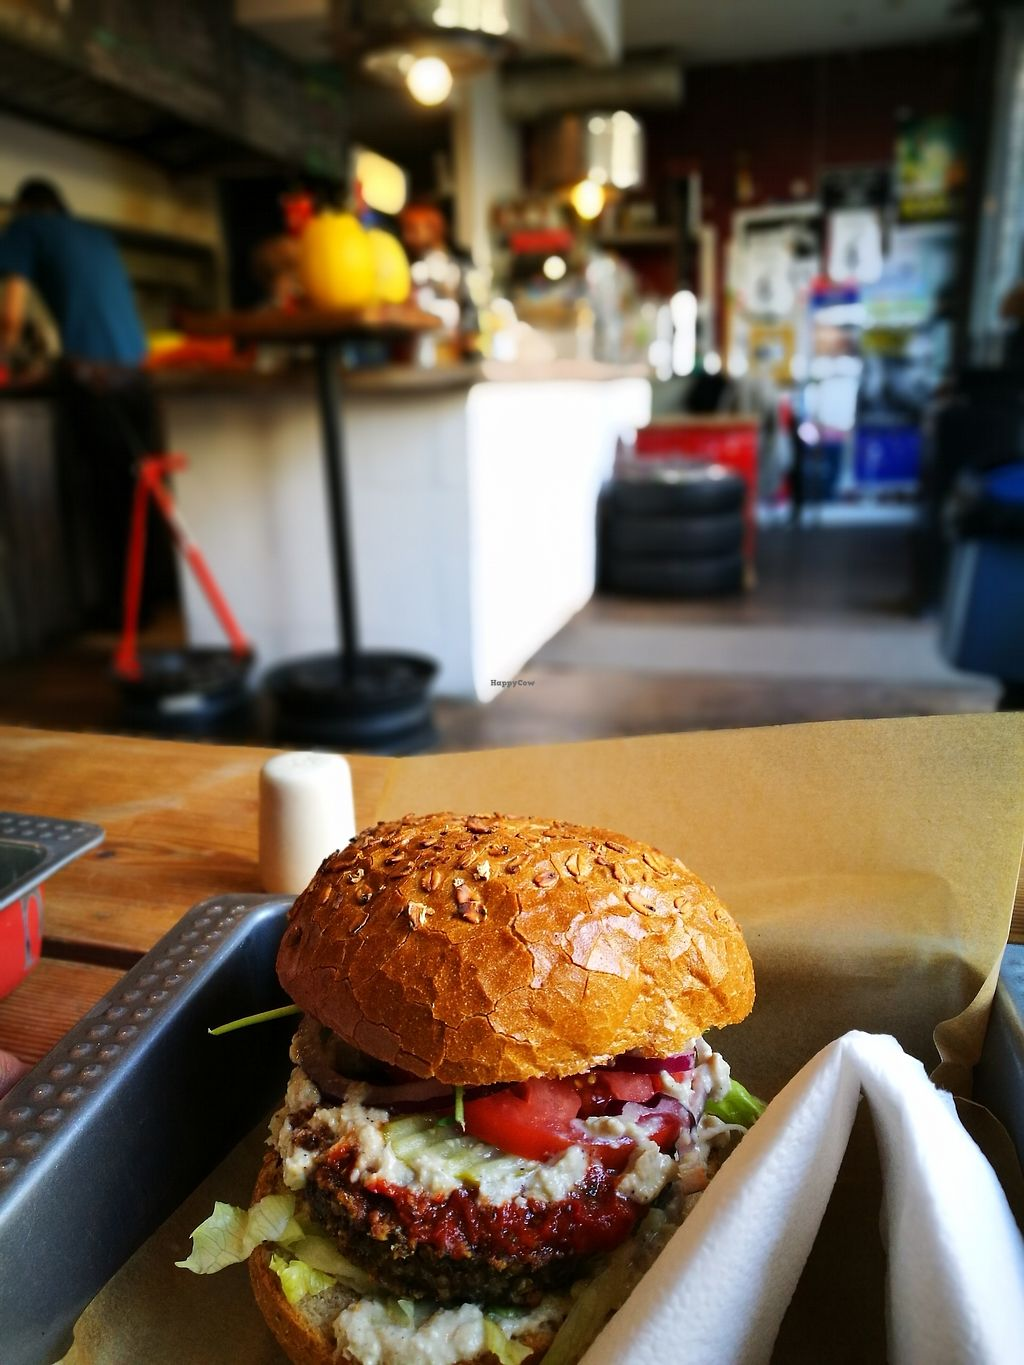 """Photo of Chwast Food  by <a href=""""/members/profile/k-girl80"""">k-girl80</a> <br/>Mushroom burger with a view to the inside <br/> October 12, 2017  - <a href='/contact/abuse/image/52782/314481'>Report</a>"""